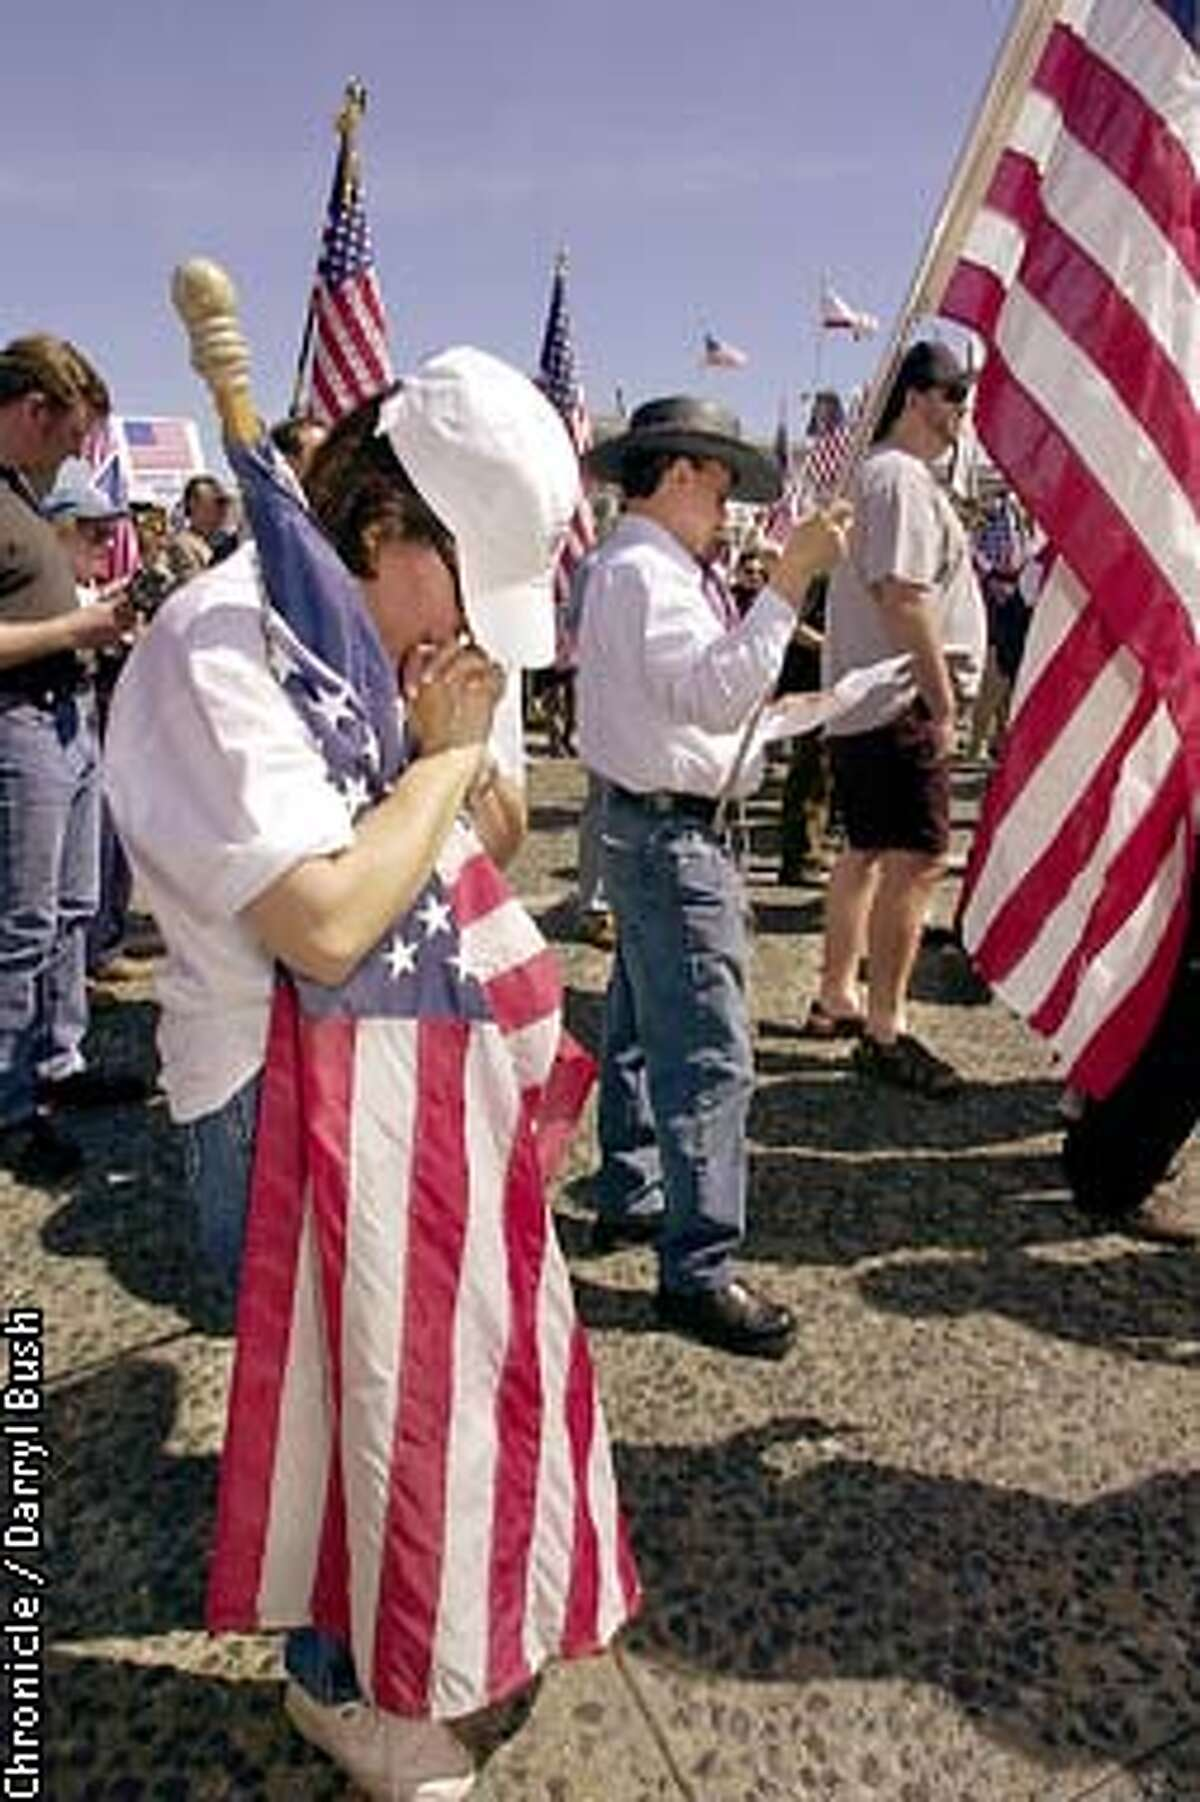 Barbara Mecham of San Carlos, prays while holding an American flag along with others attending a pro-troops rally held at Civic Center in San Francisco. Chronicle Photo by Darryl Bush